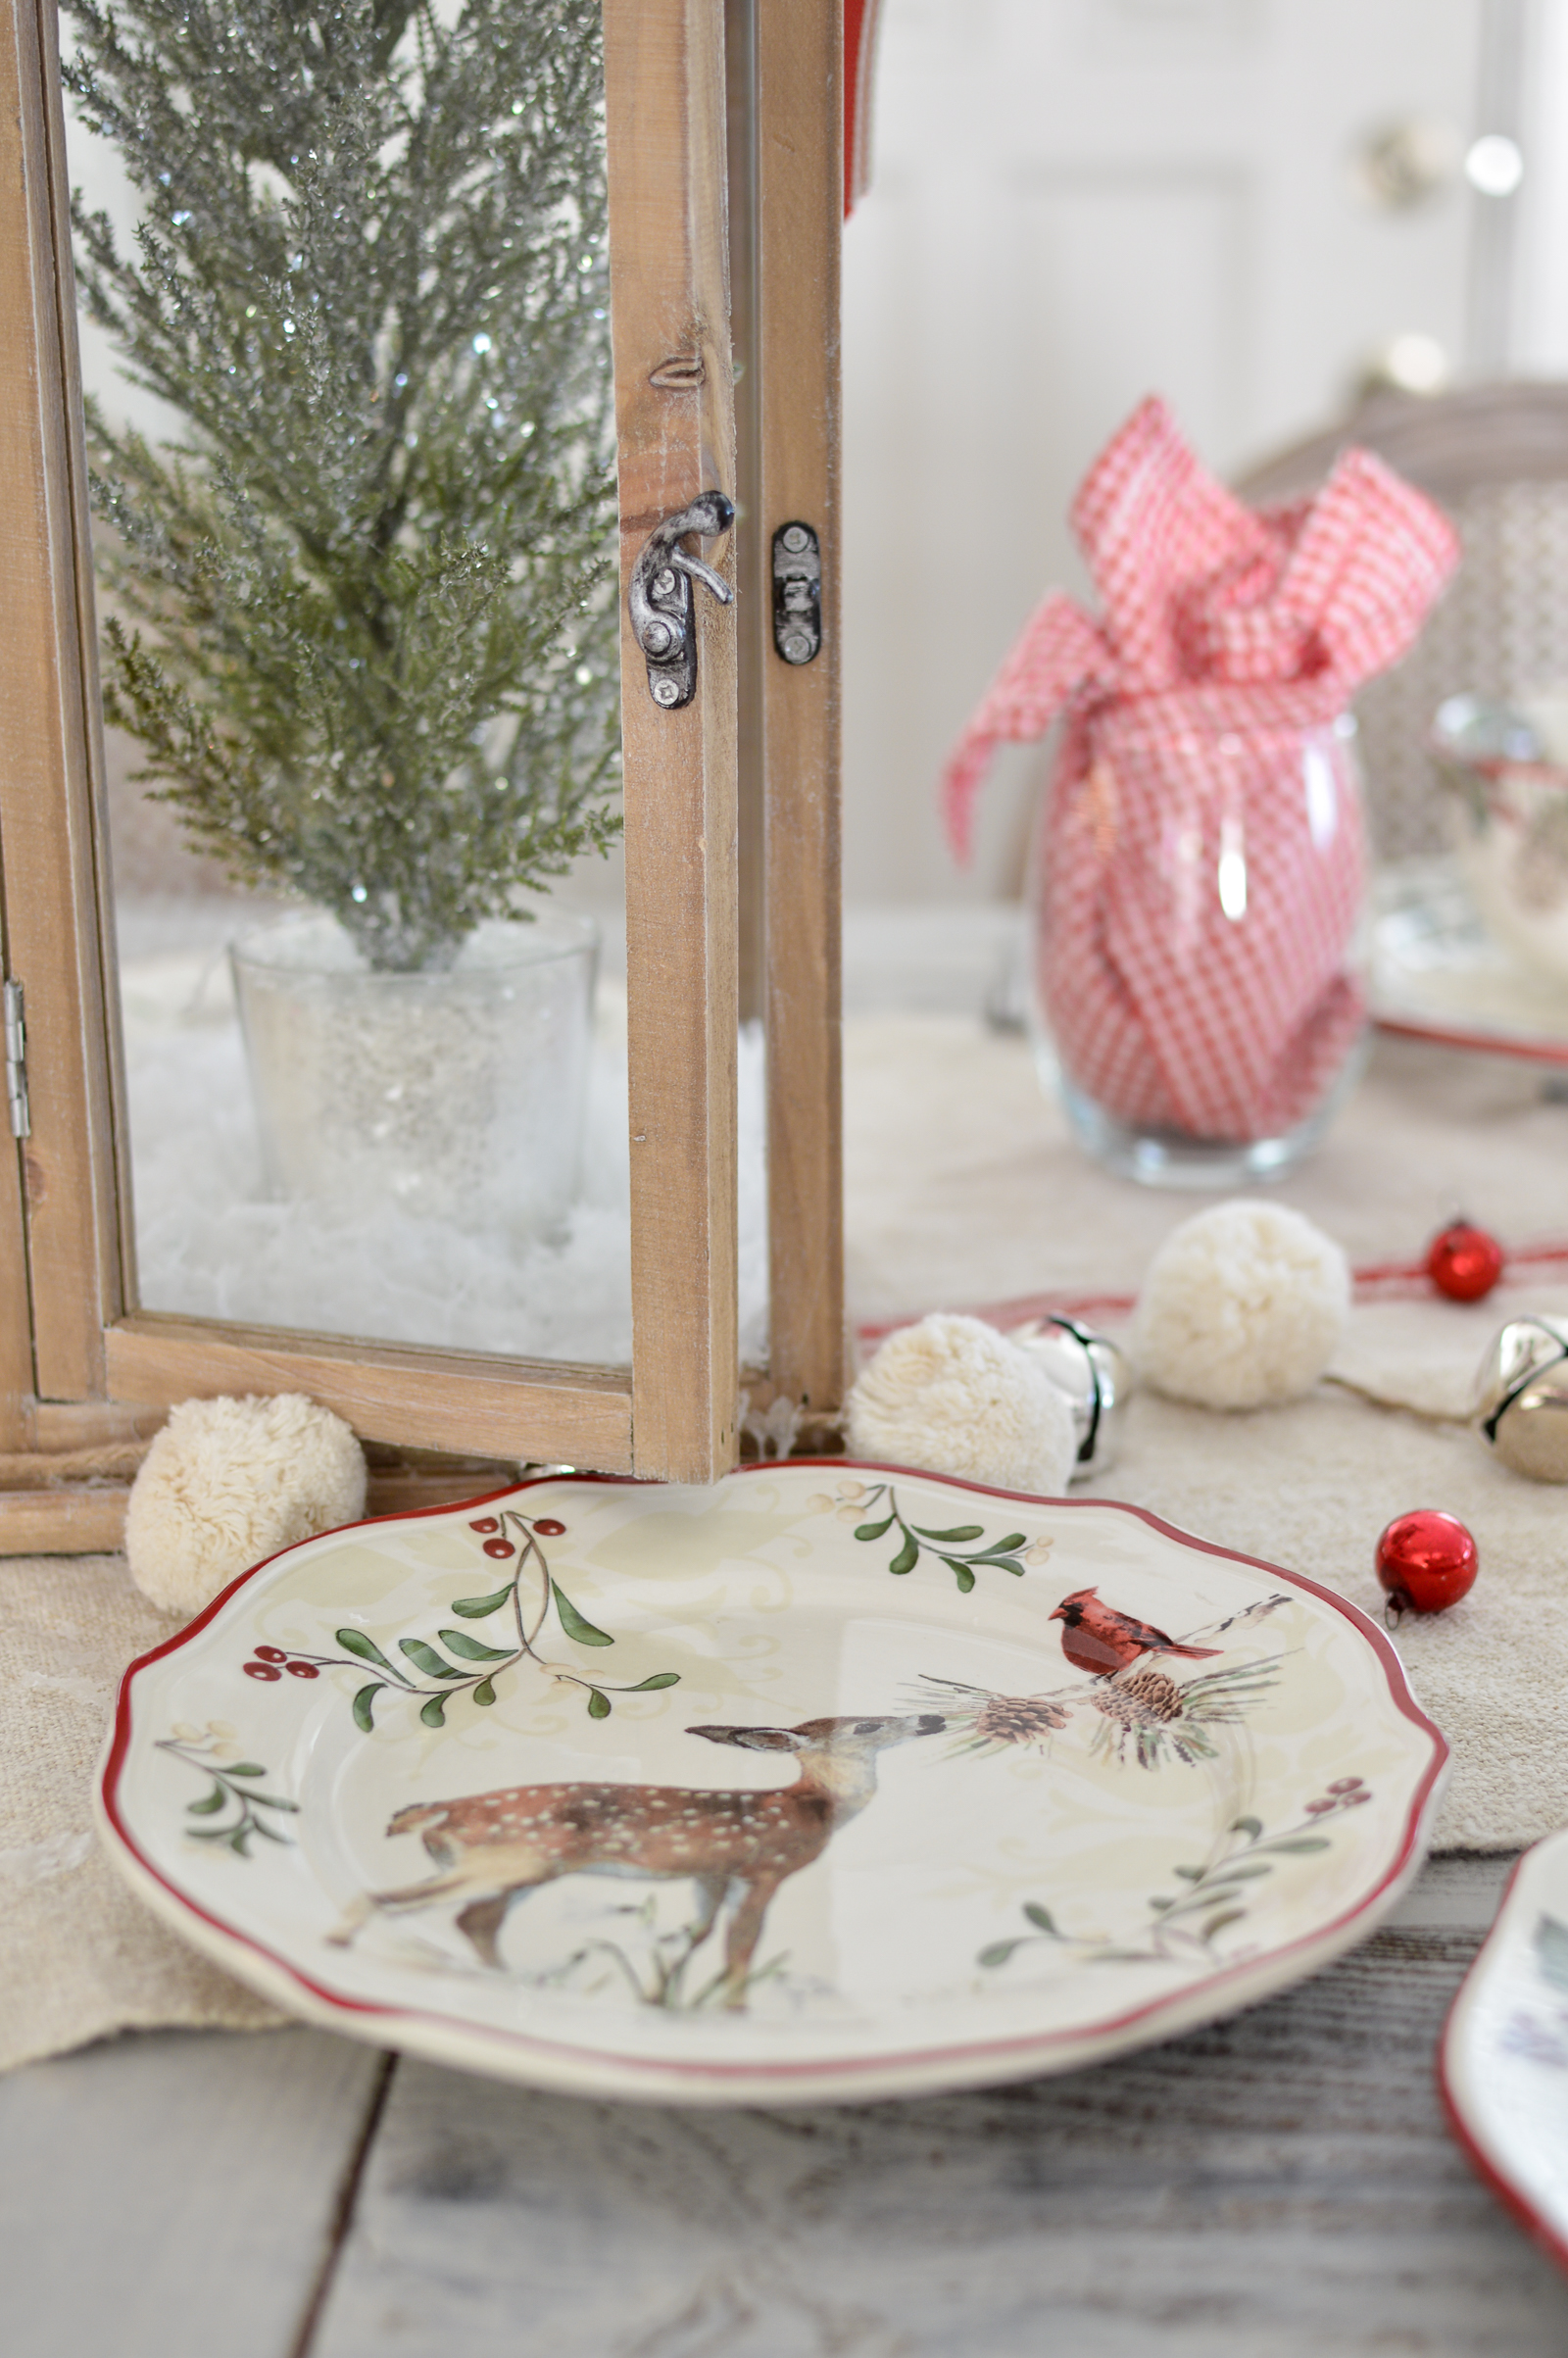 Festive Traditions Christmas Holiday Table and Fireplace Mantel